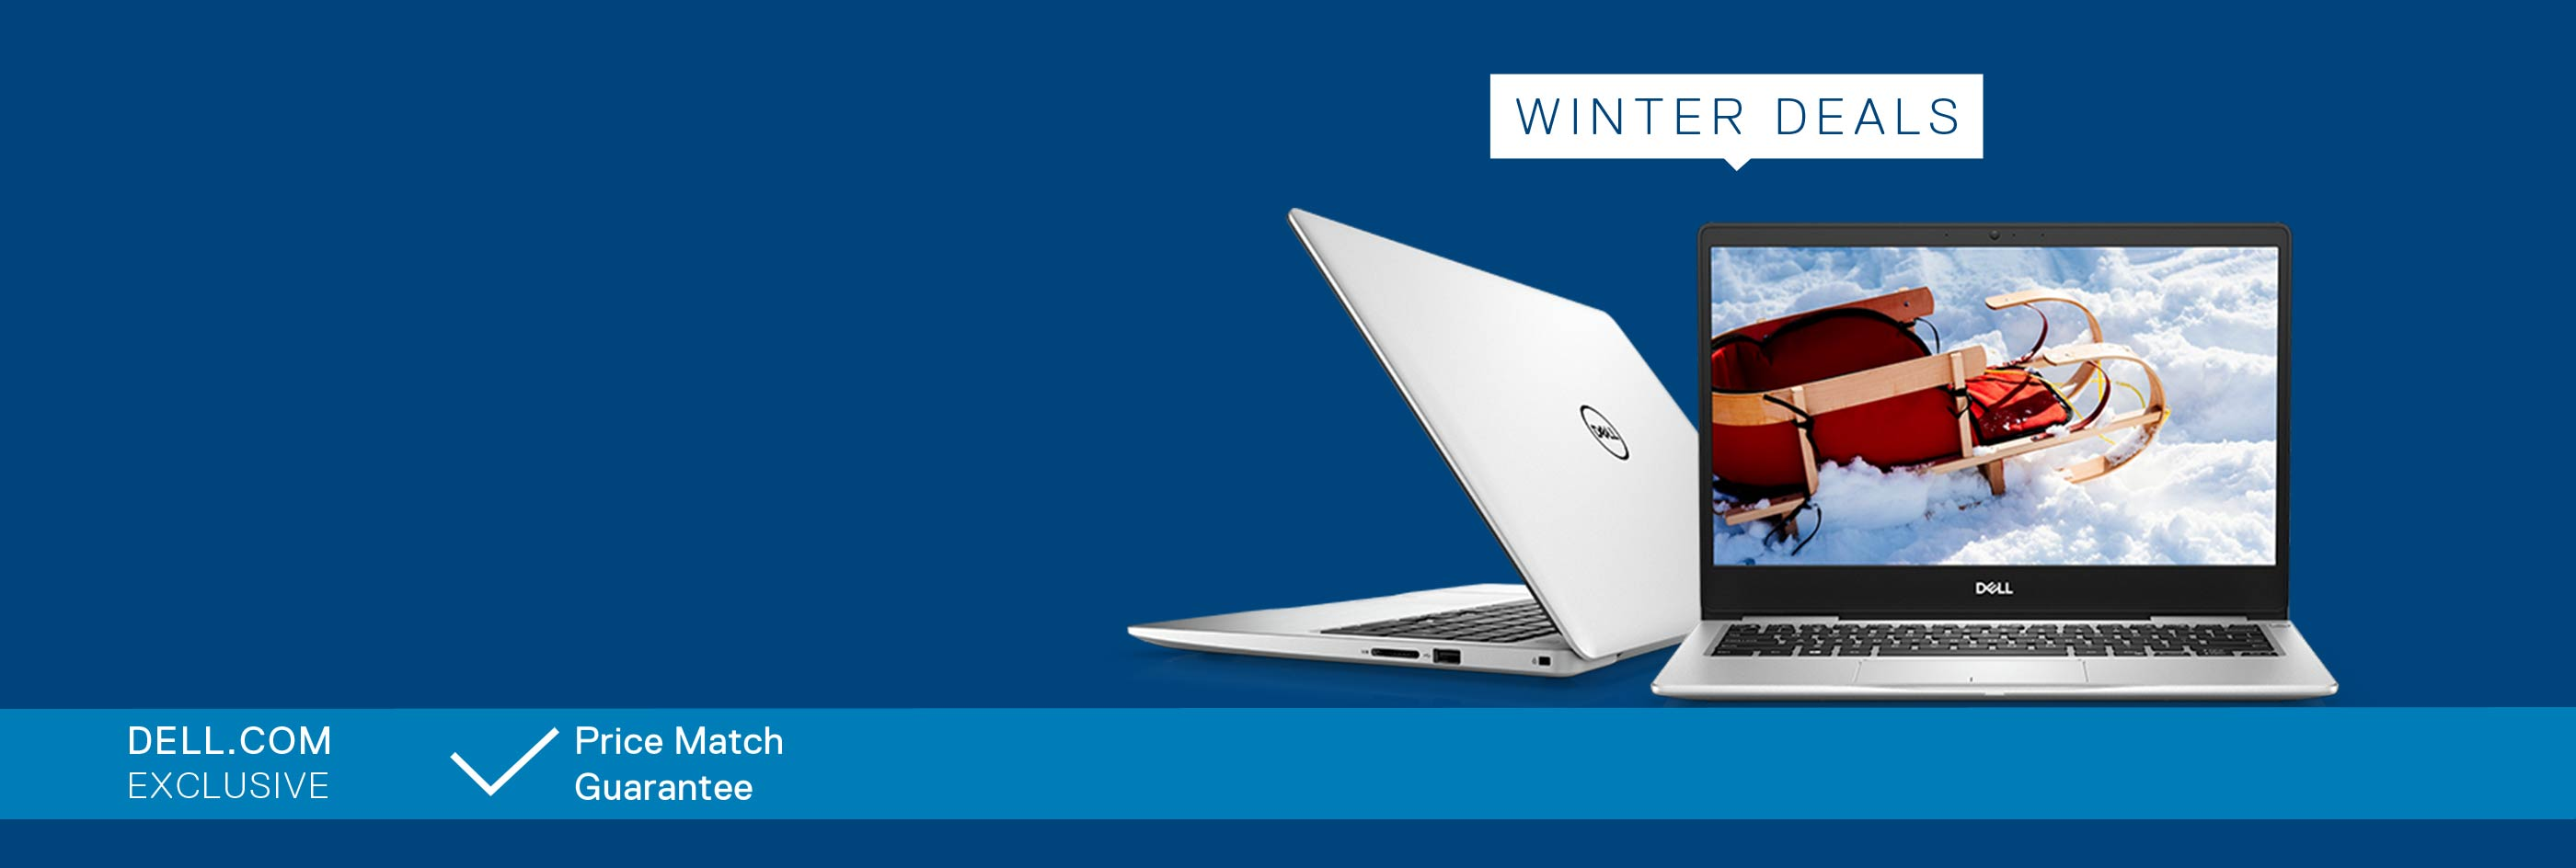 Up to 30% off selected laptops.